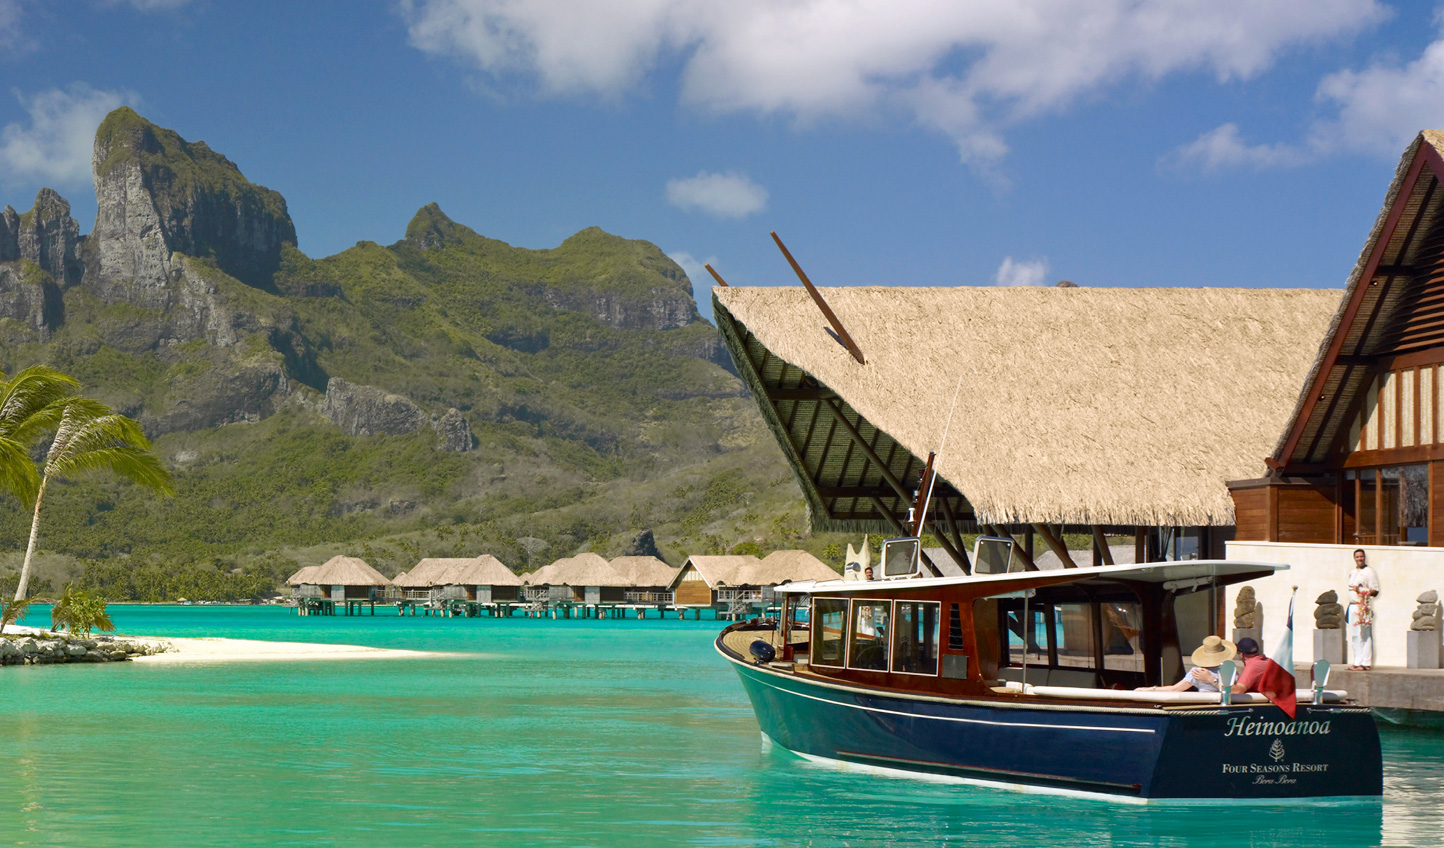 Arrive in style at Four Seasons Bora Bora